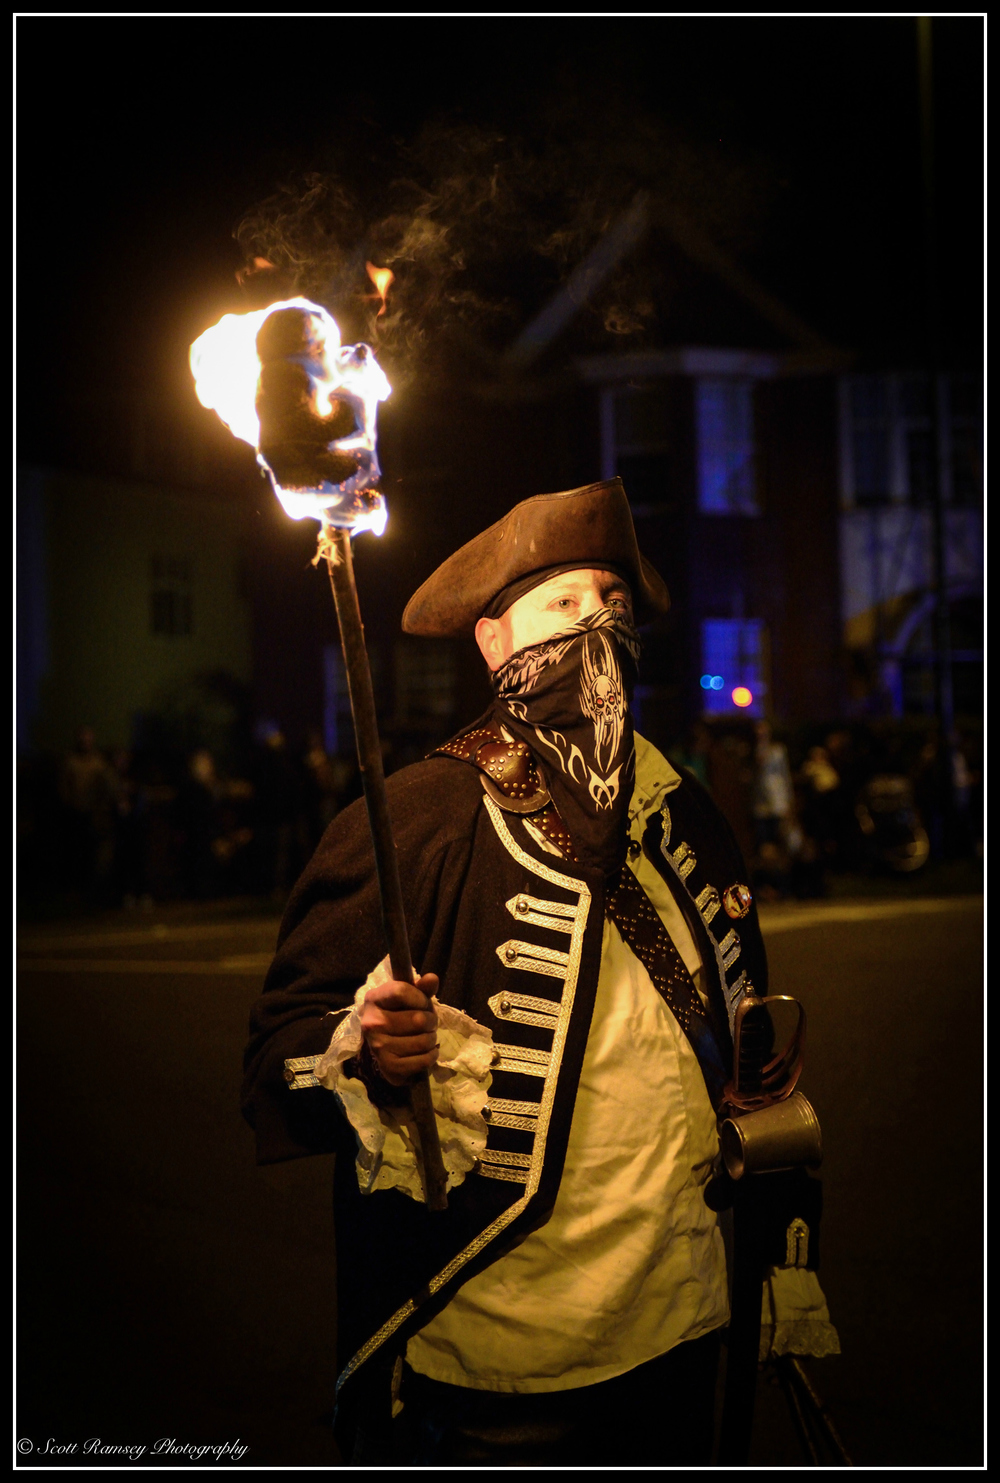 Dressed in a pirate costume and holding a flaming torch a member of the Eastbourne Bonfire Society stands in the street during the Littlehampton Bonfire Torchlight Procession.